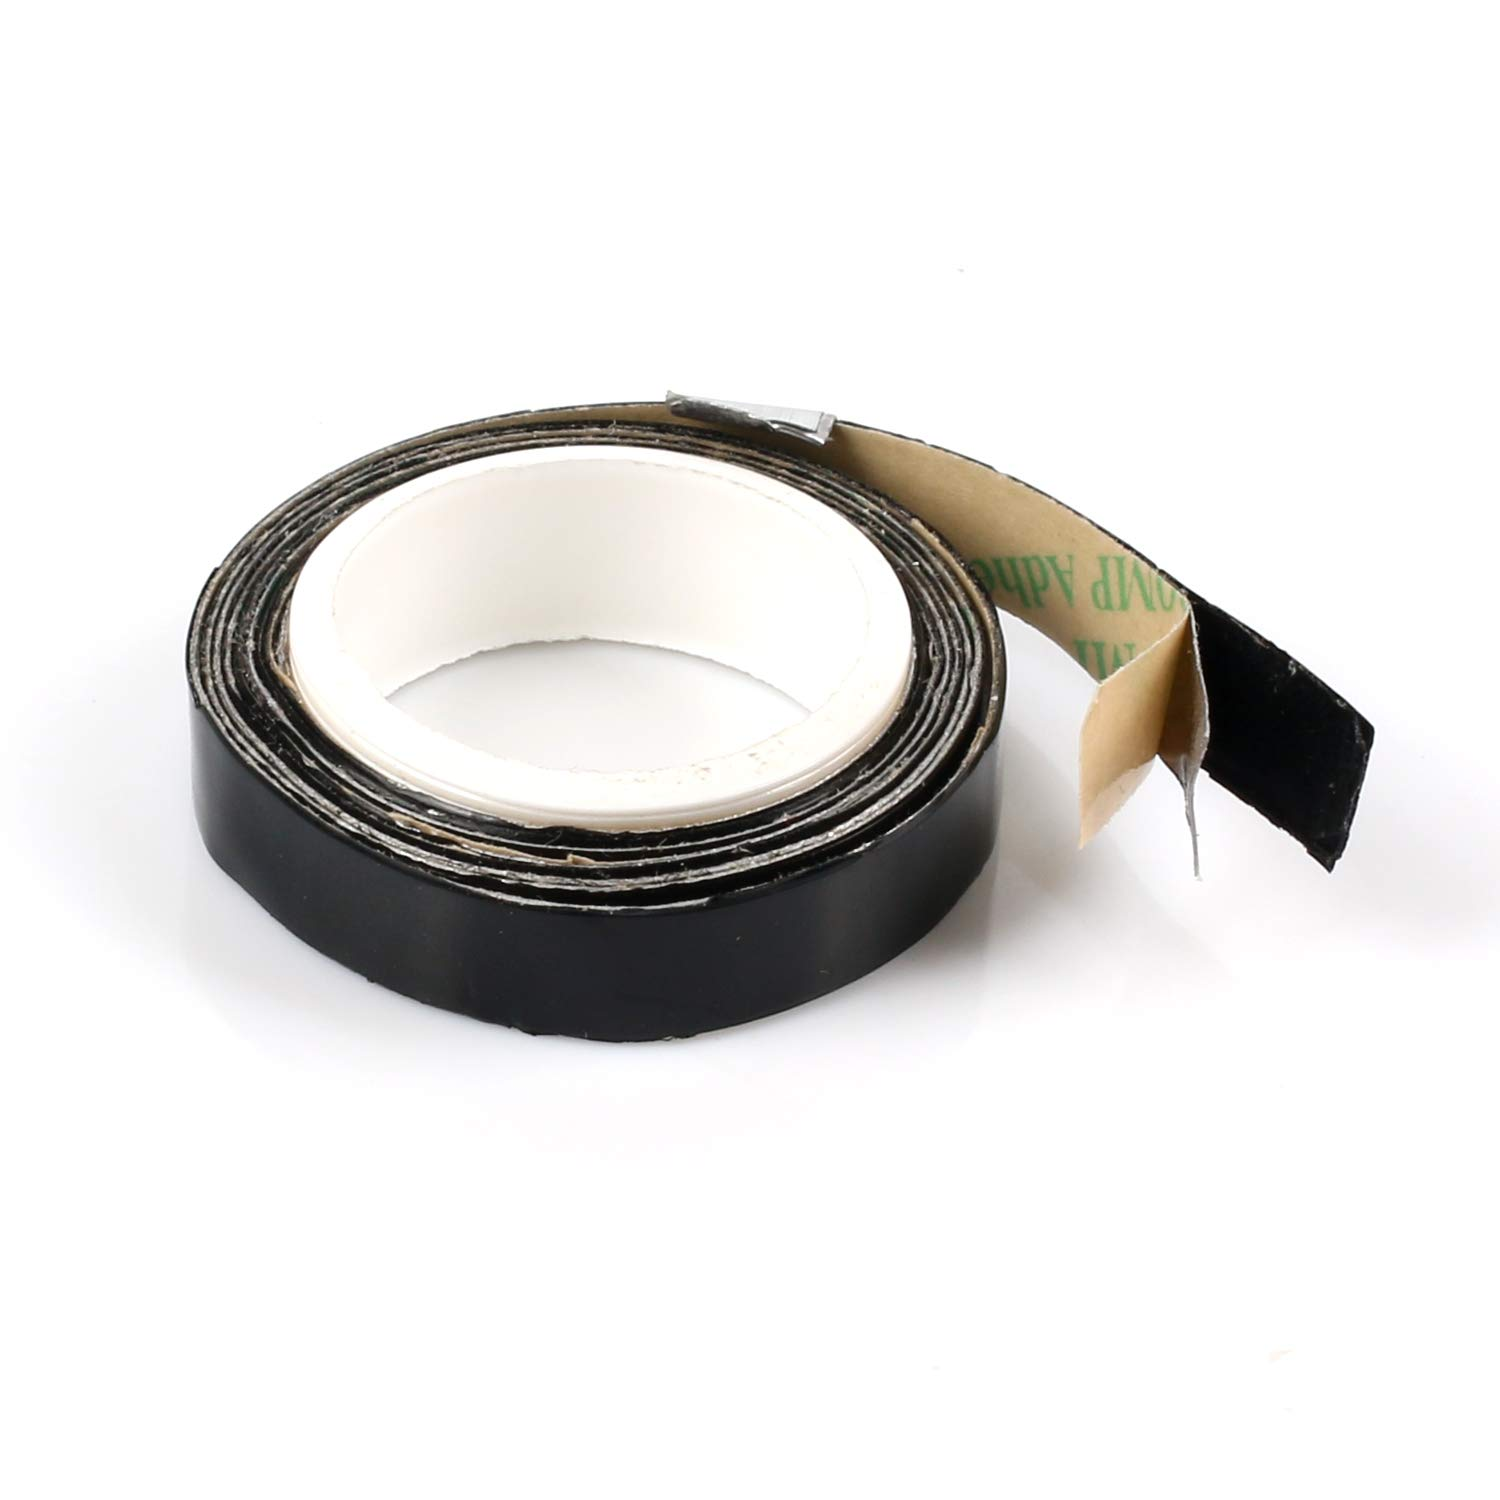 SummerHouse 0.25g//Inch Tennis Racquet Lead Tape Weight with Color Coated 1//4 x 197